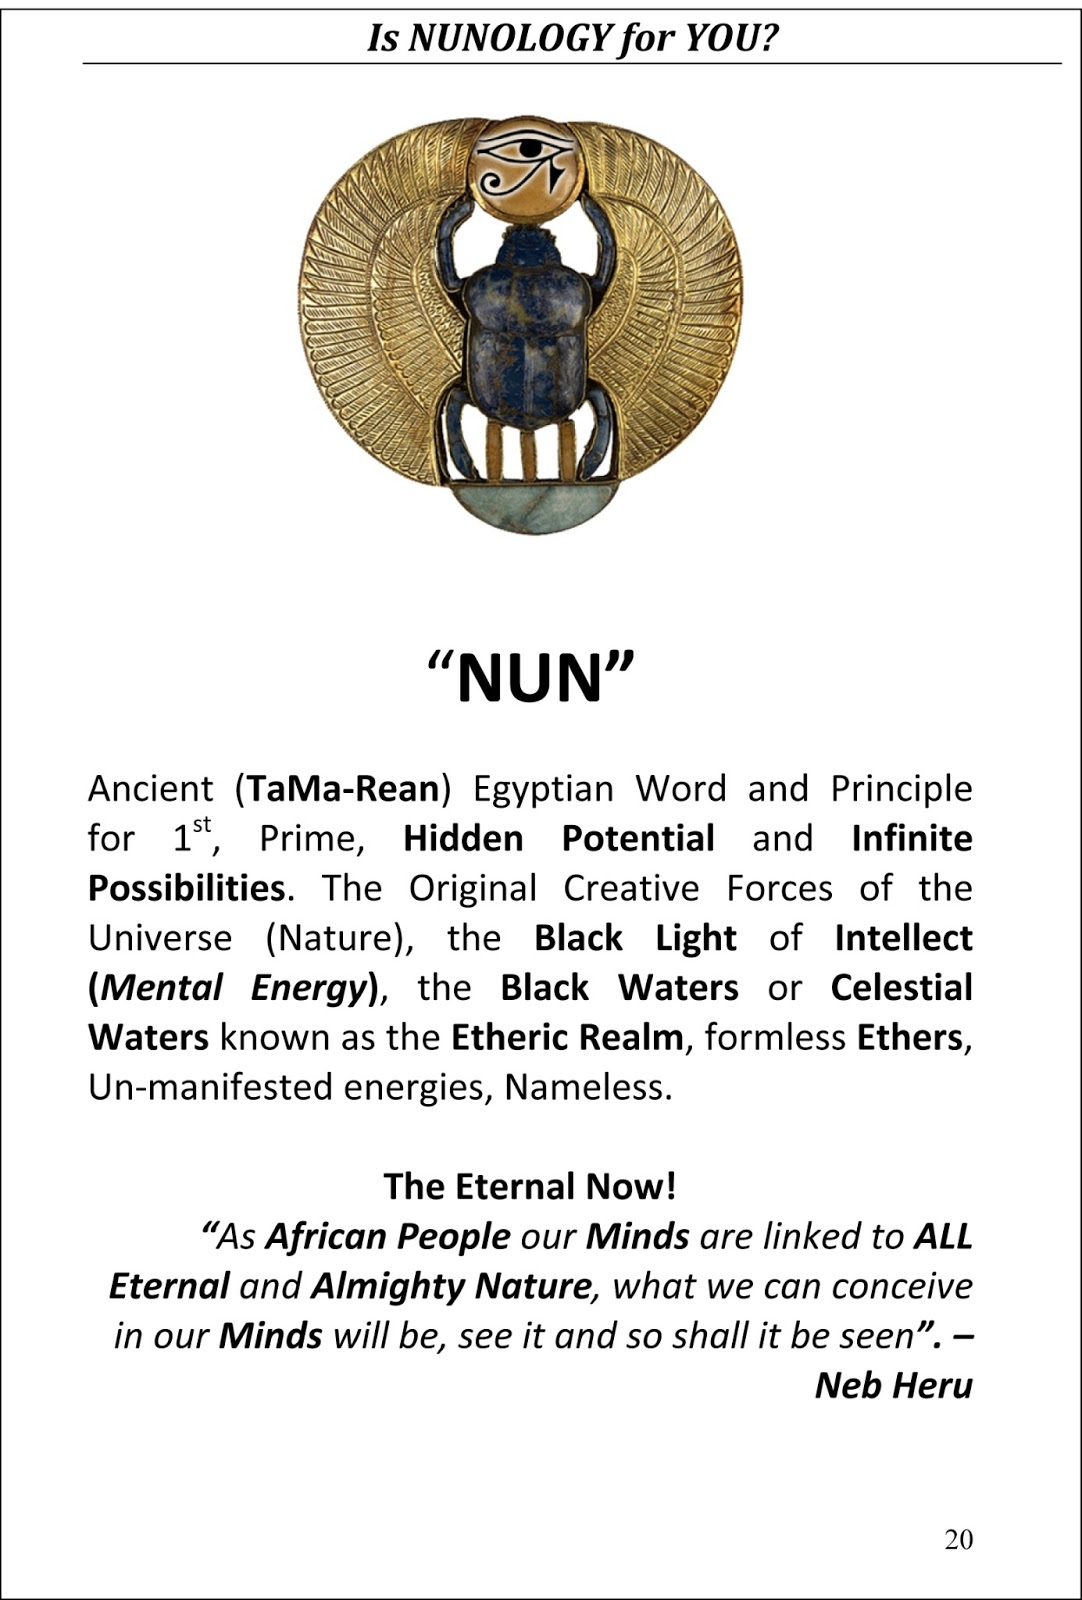 The eternal temple of nuninc the symbol of nunology made sacred symbol found on page 20 in is nunology for you copywrite 2010 eton usa biocorpaavc Gallery